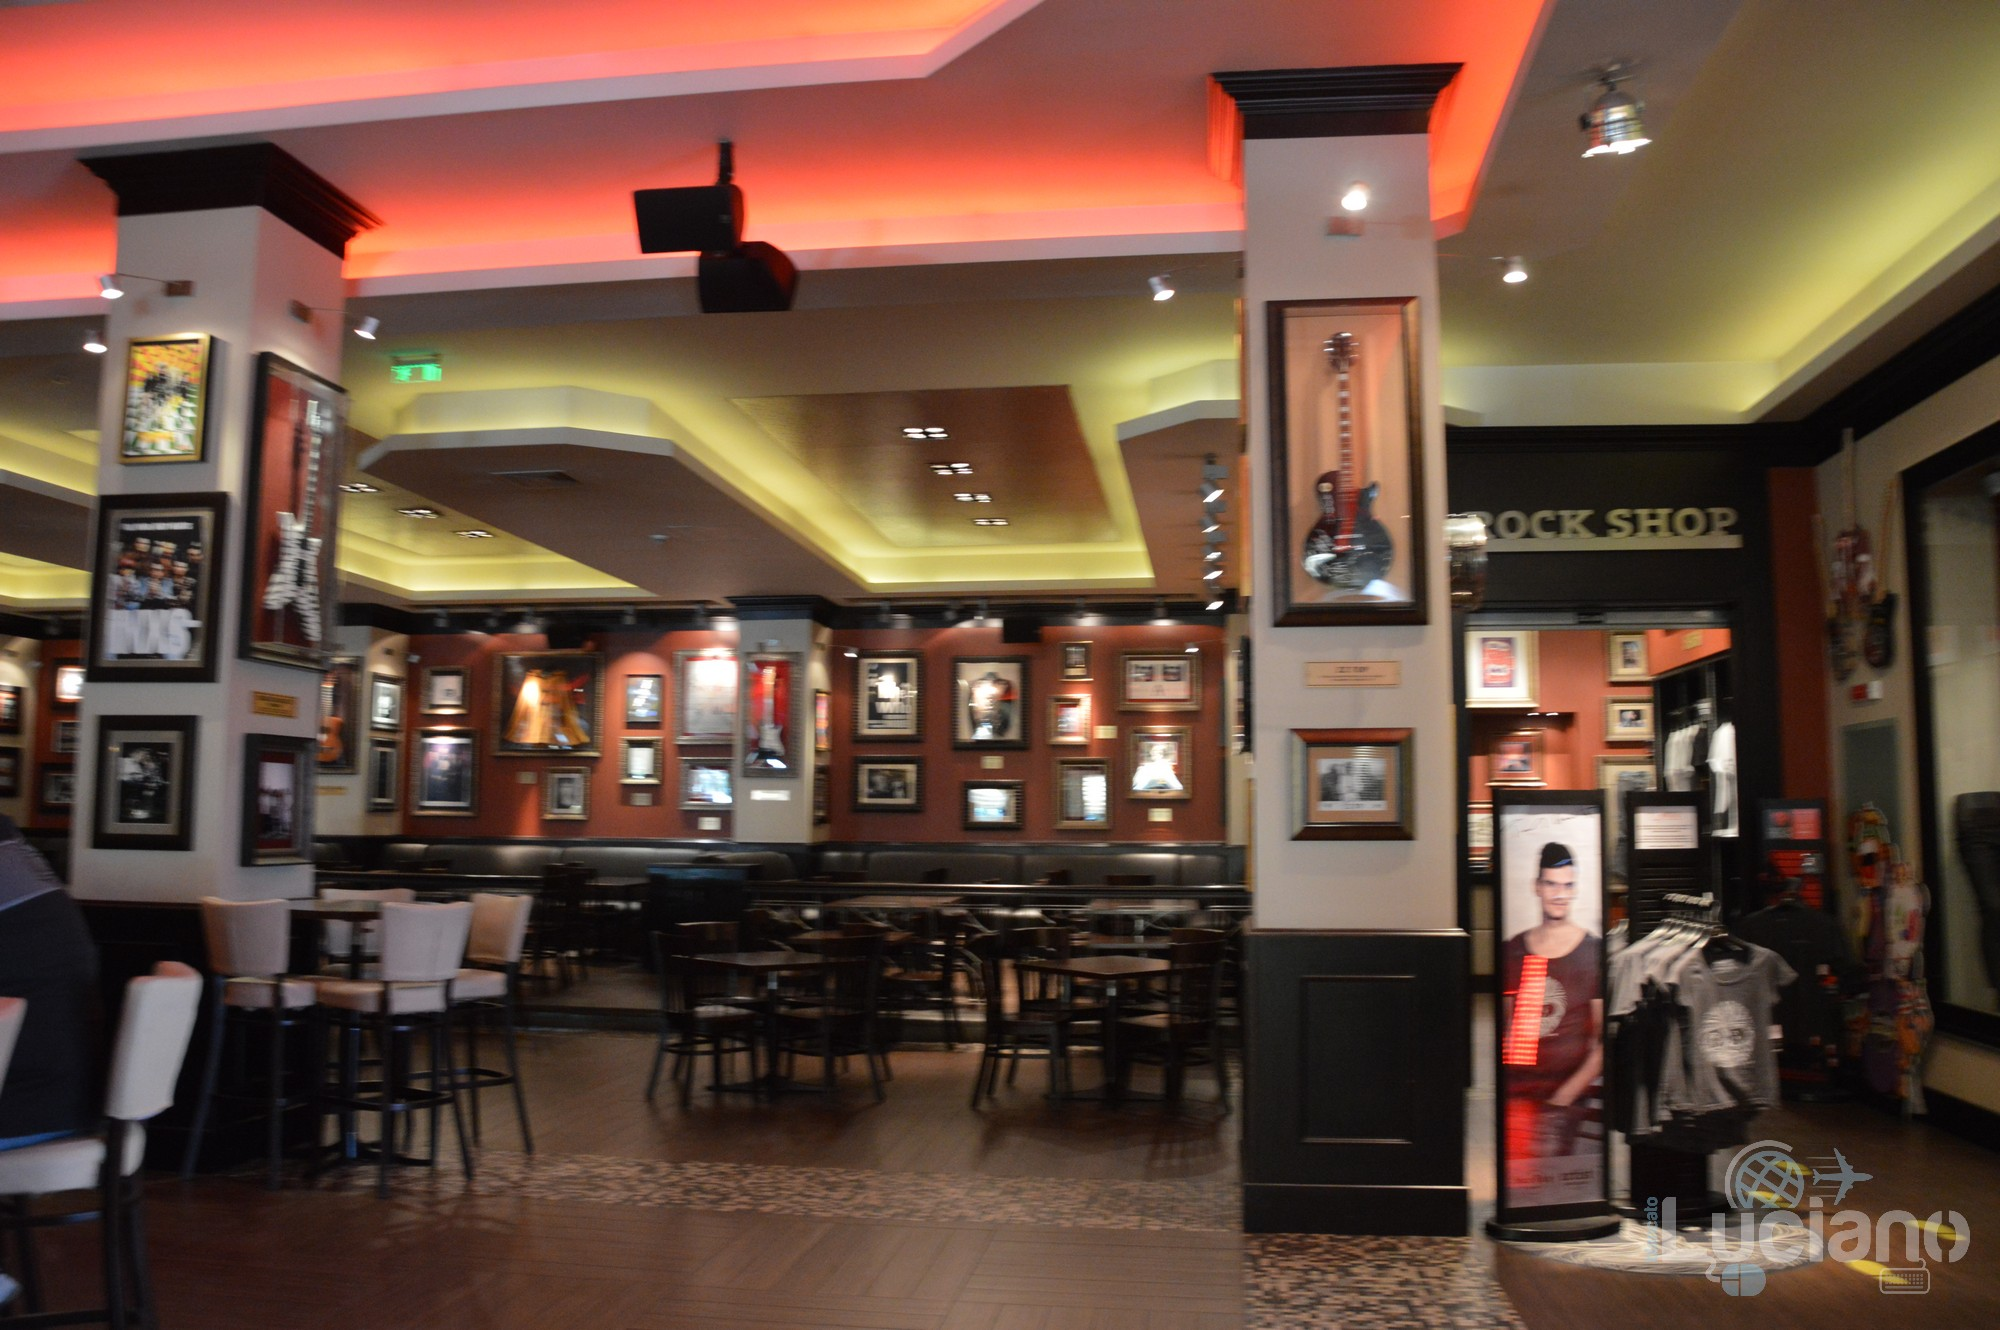 Hard Rock Cafe - interni, Șoseaua Kiseleff, Bucarest, Romania